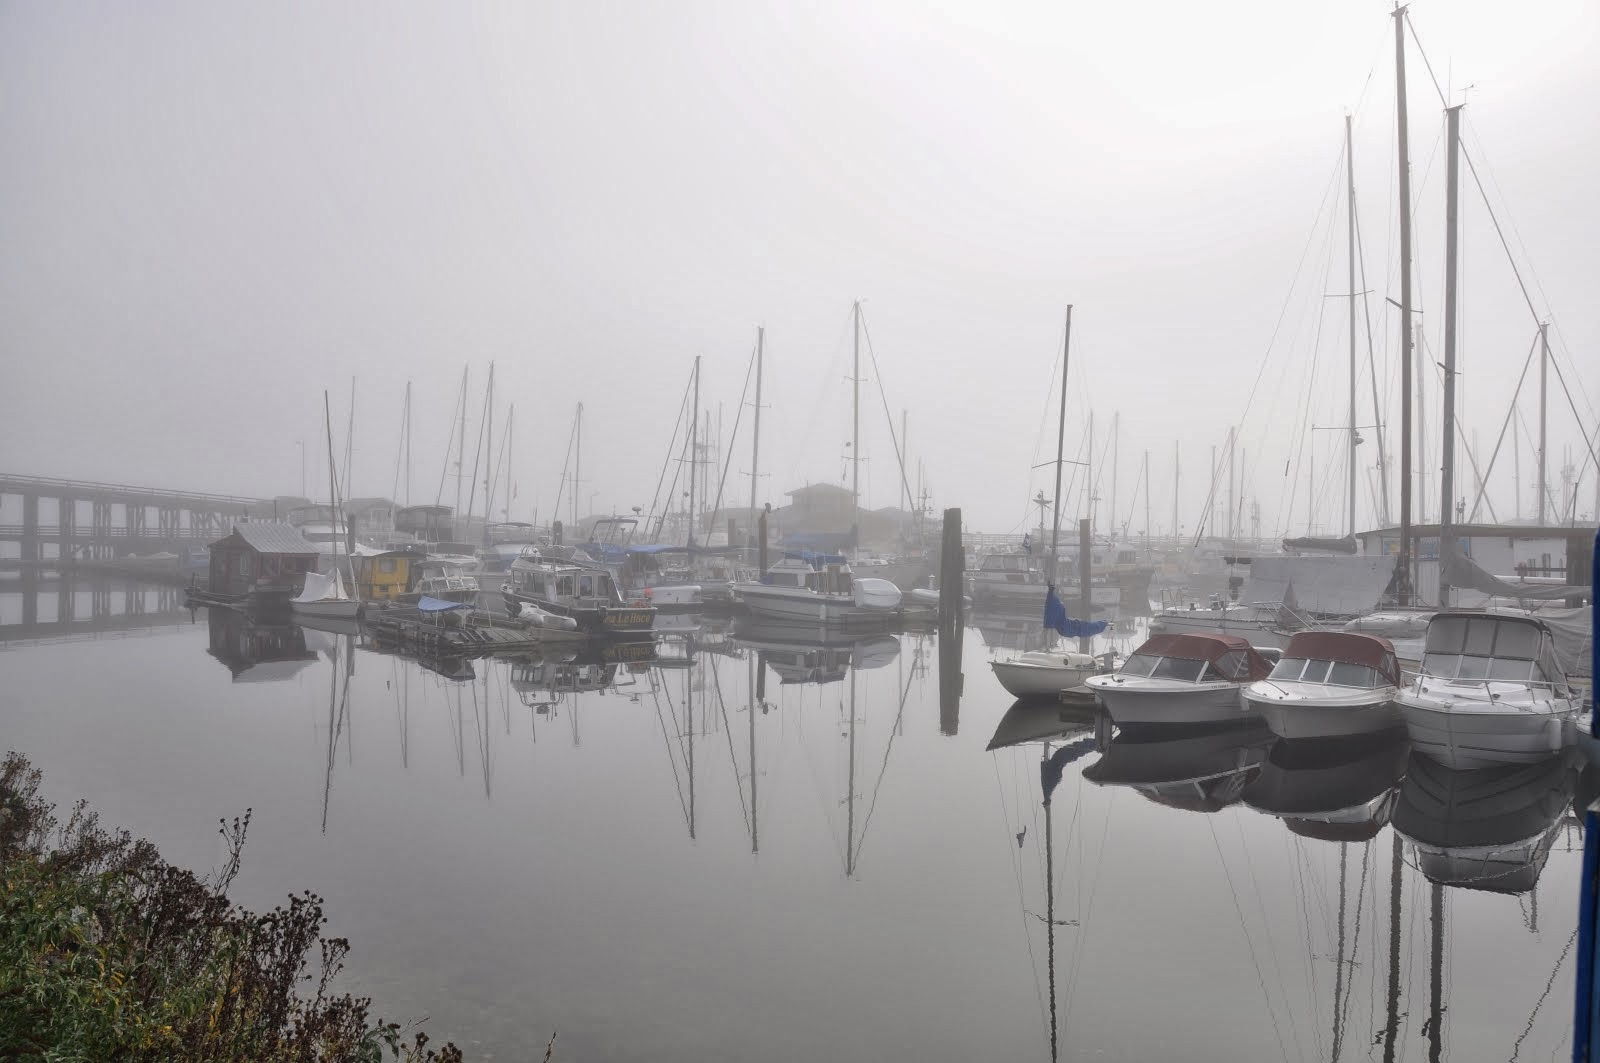 Gibsons Landing 'in the fog'